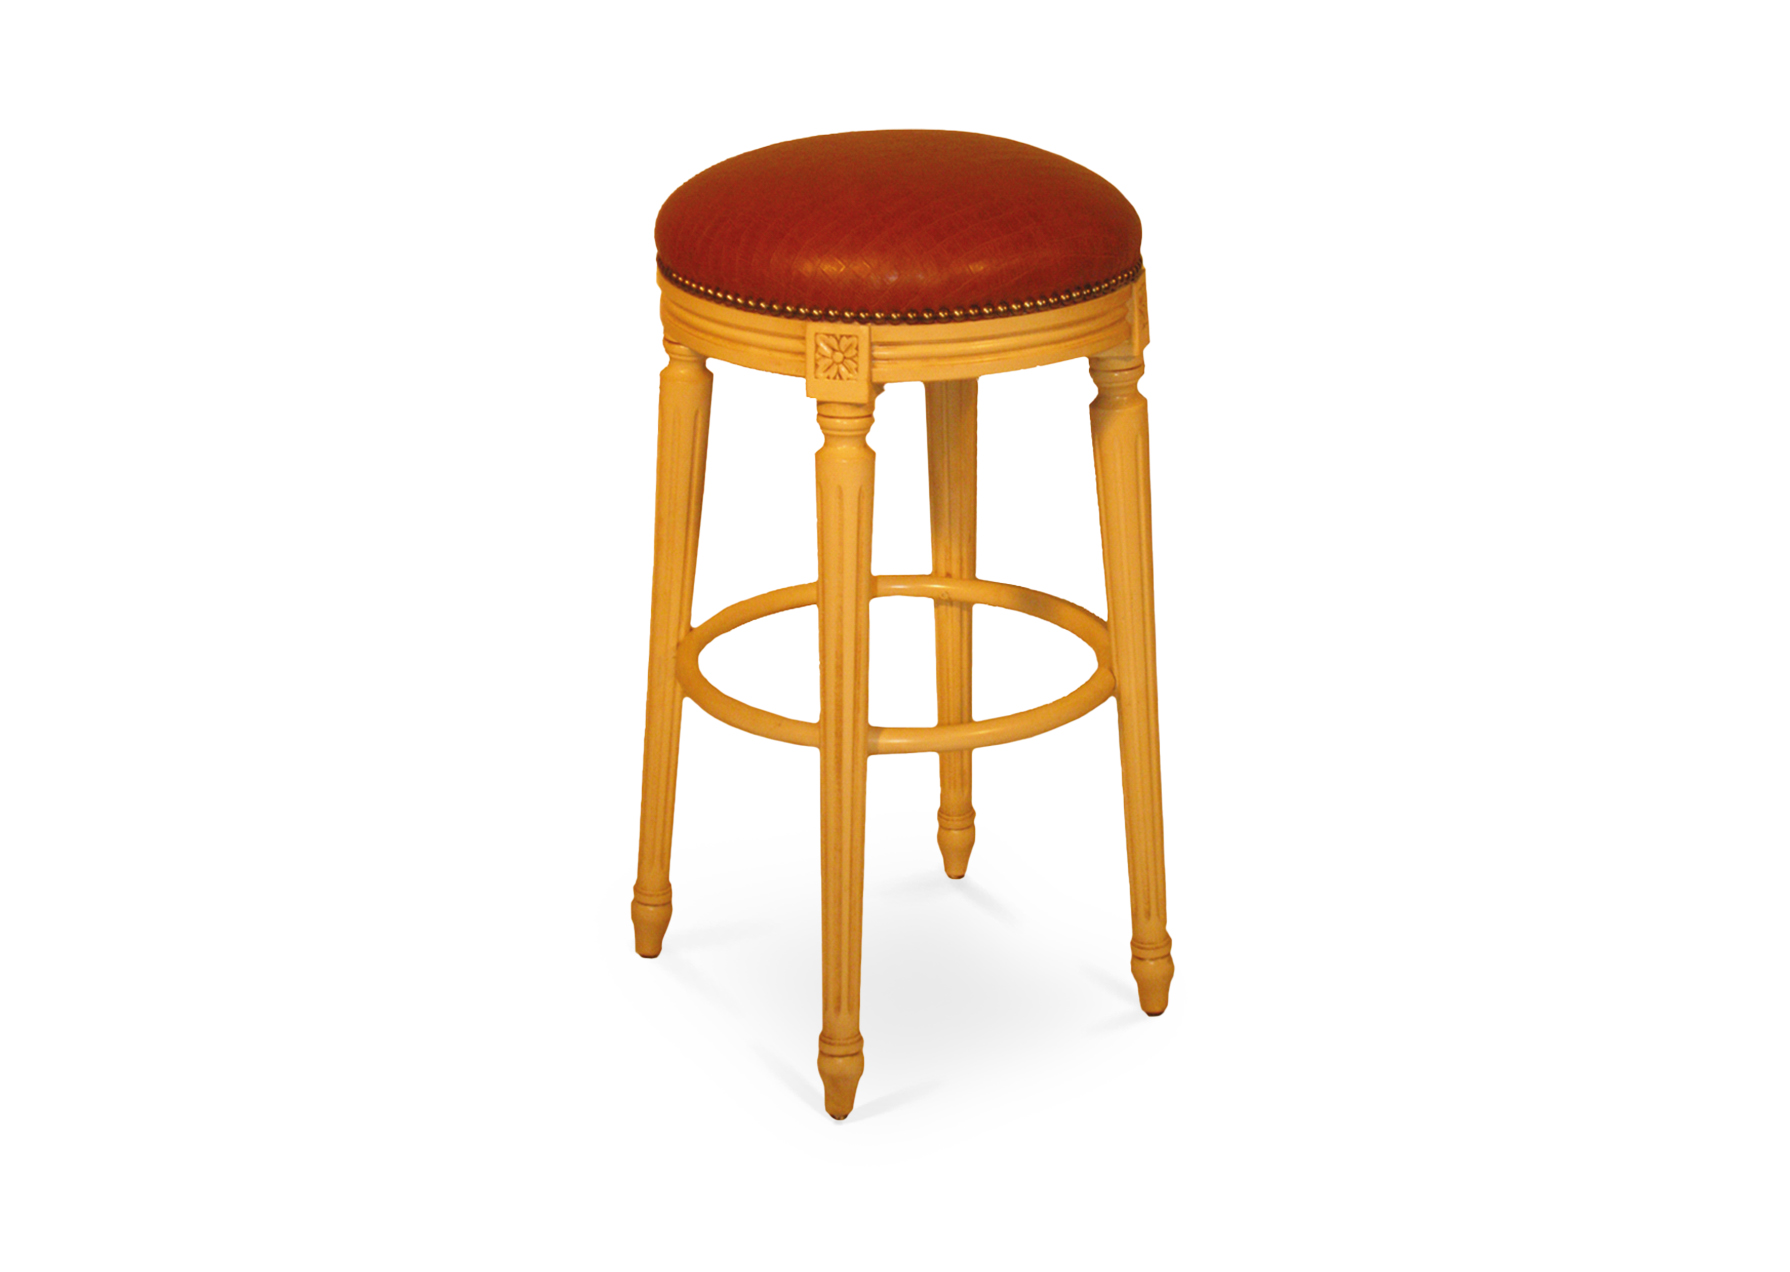 Peachy Adelia Parson Backless Counter Stool Nailheads Pavar Cjindustries Chair Design For Home Cjindustriesco